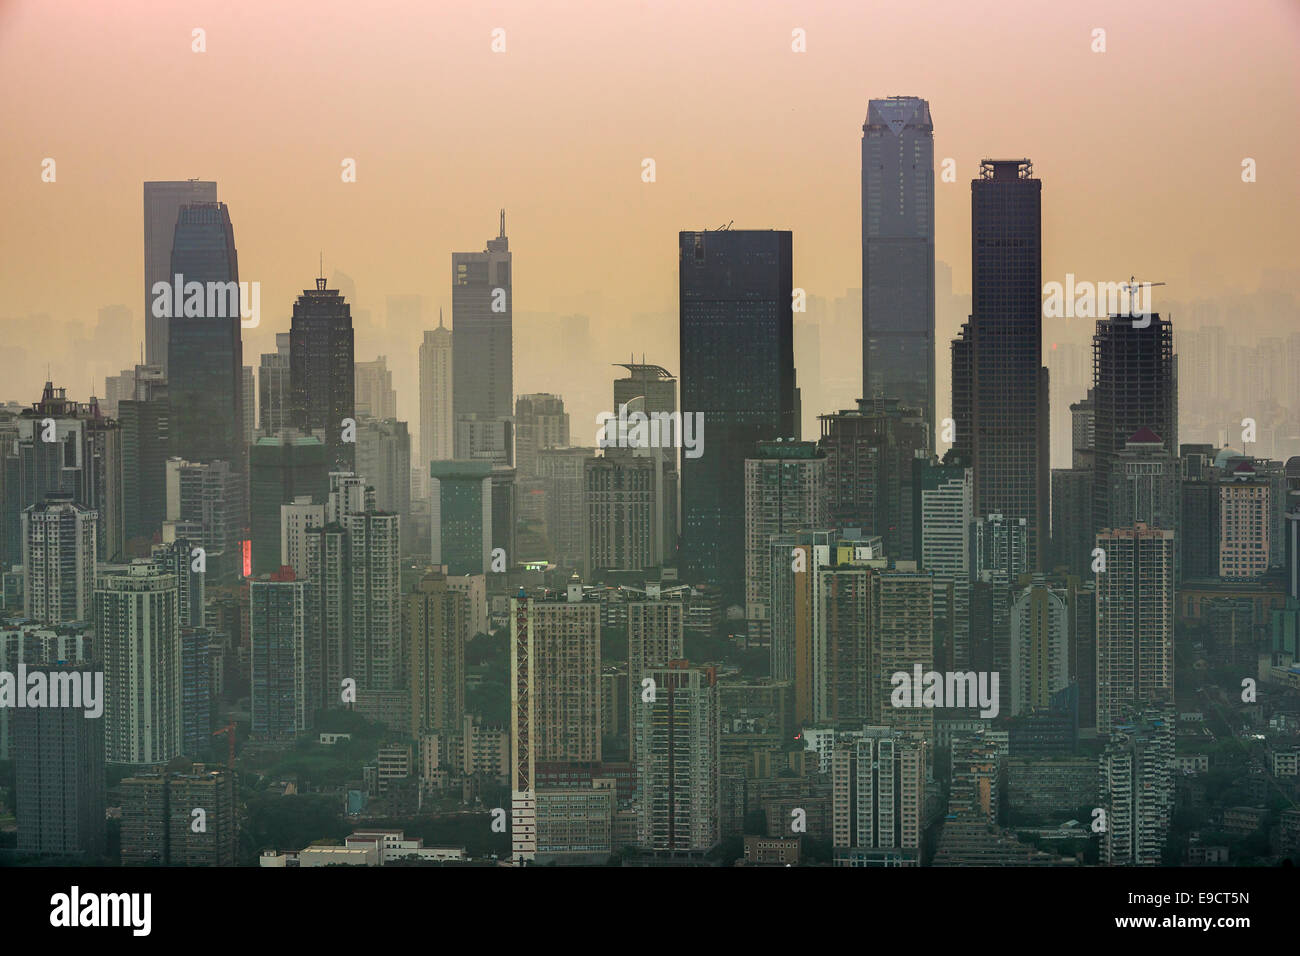 Chongqing, Chine sur la ville. Photo Stock